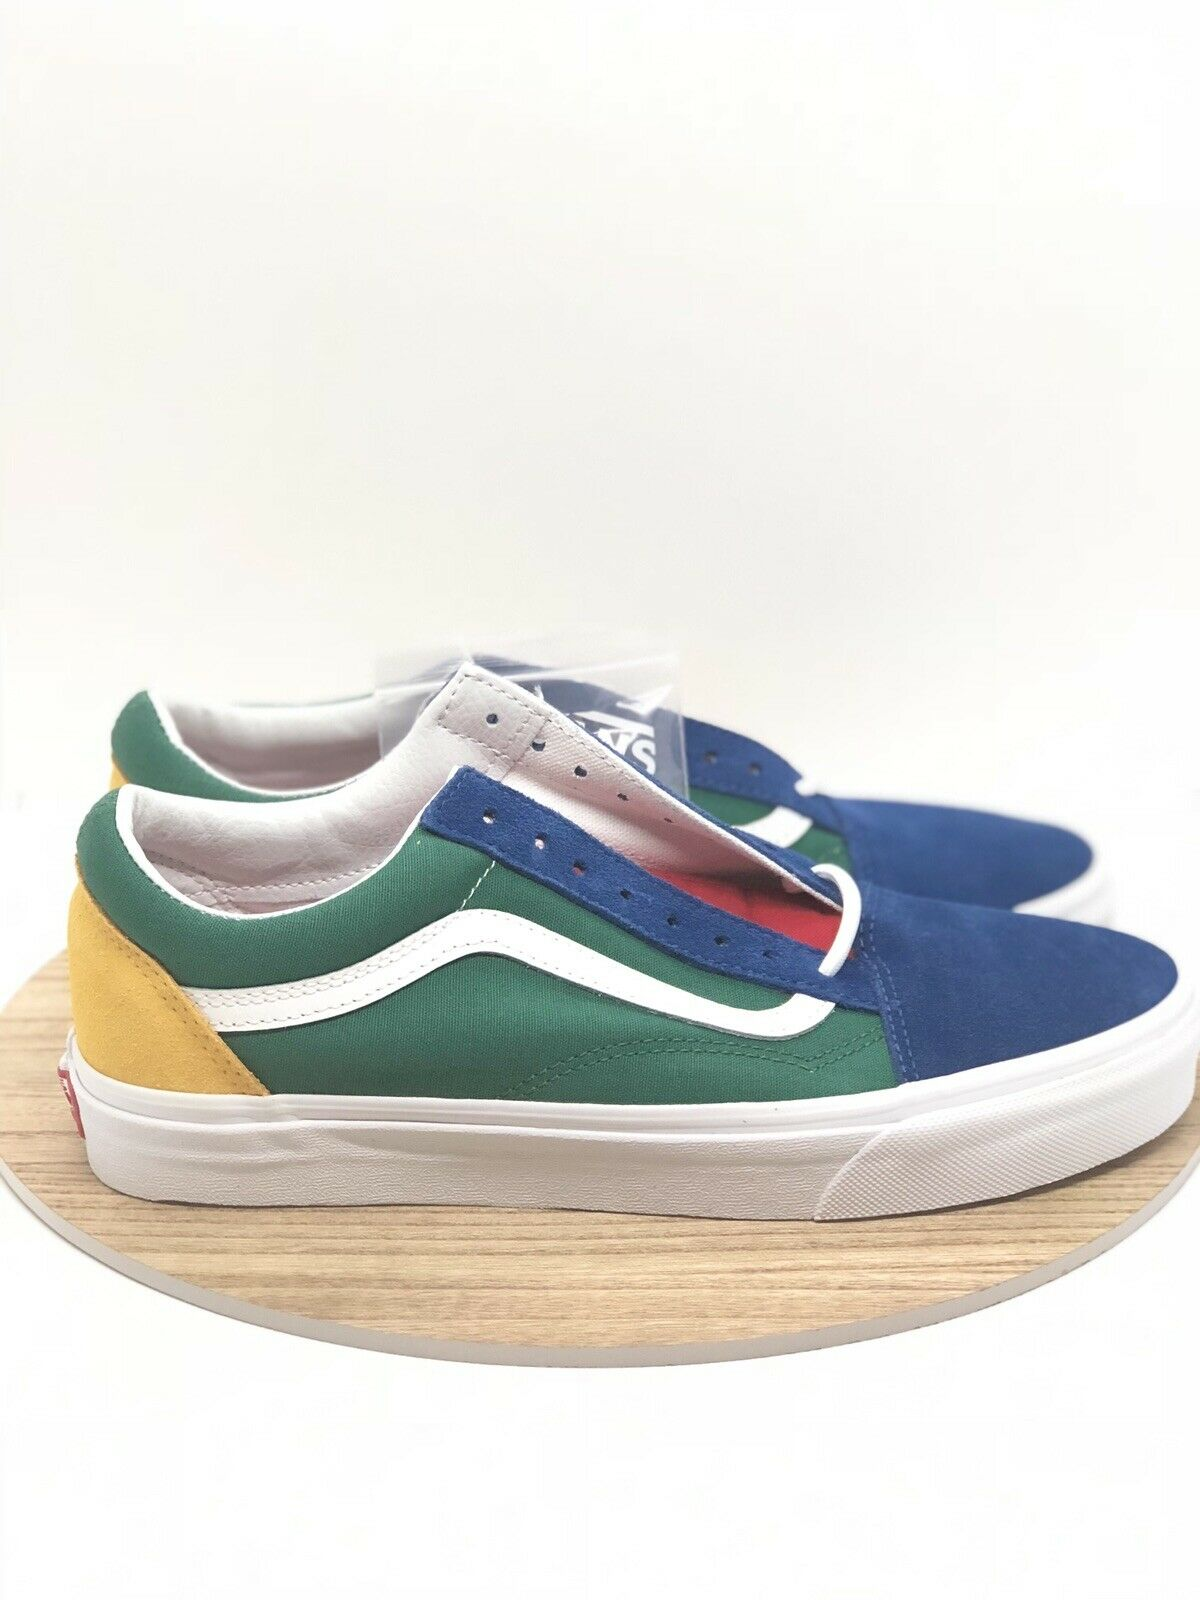 Vans Old Skool Yacht Club Mens Sz 9 Limited Edition BRAND NEW